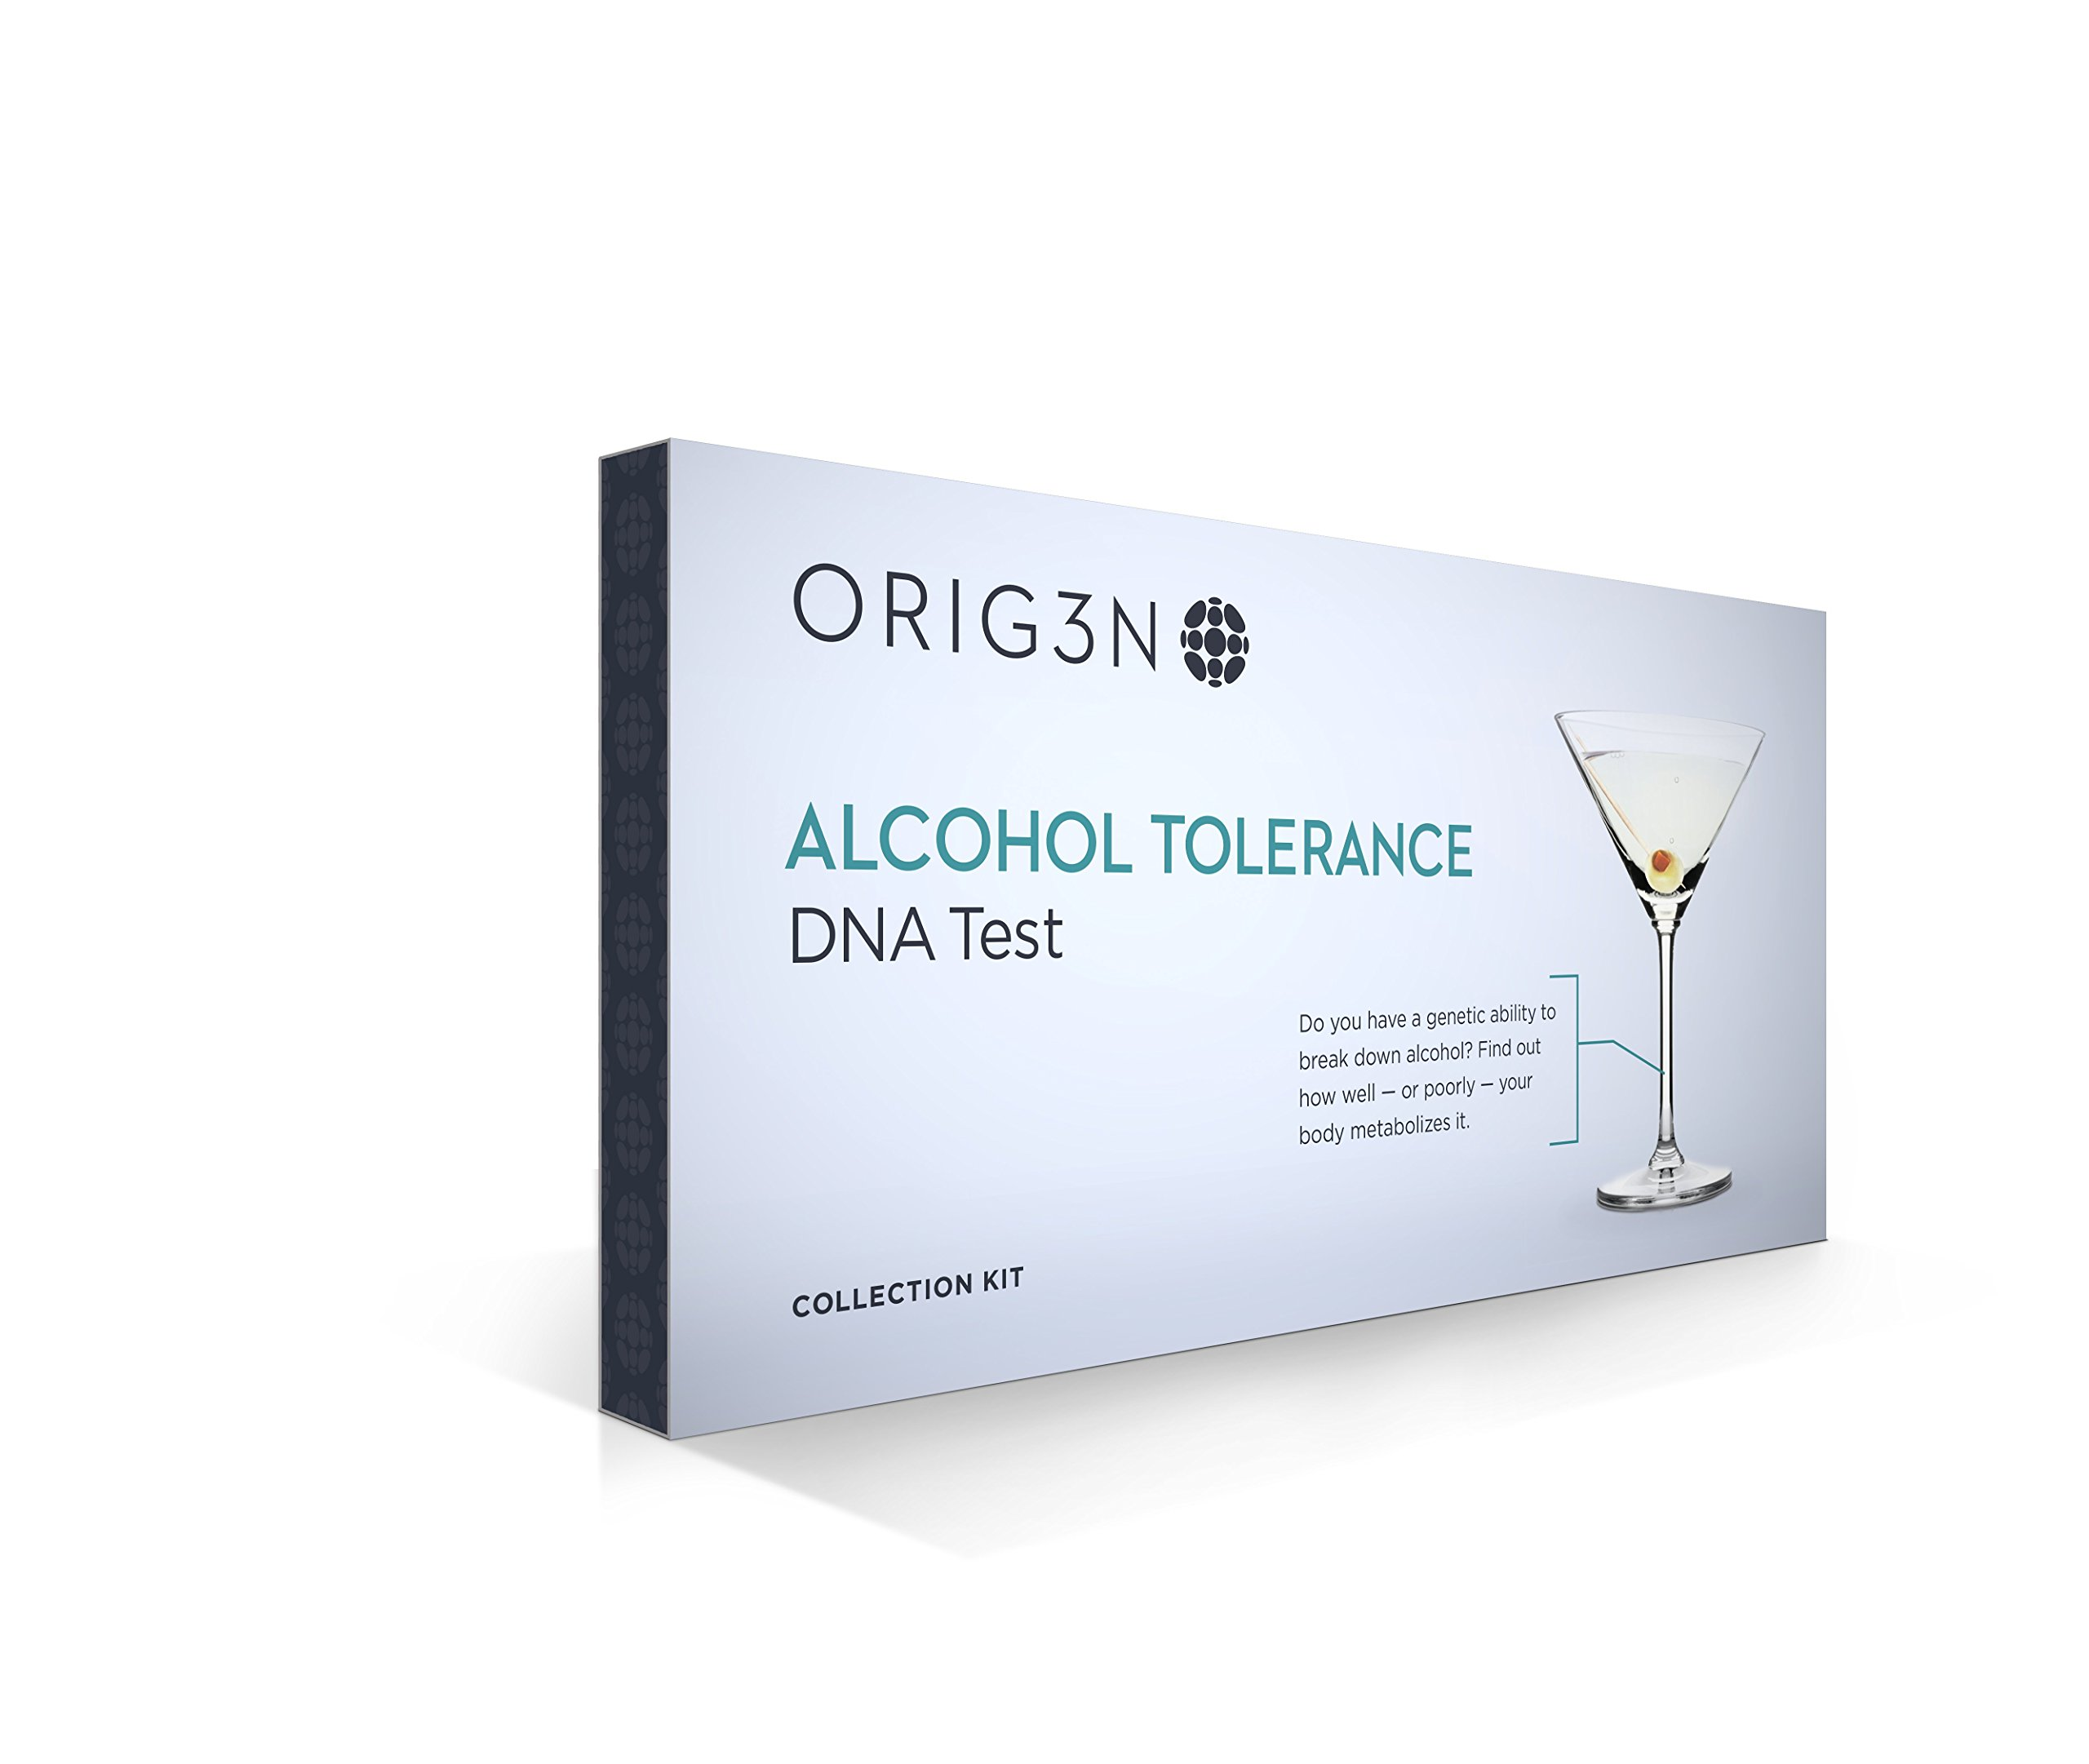 ORIG3N Genetic Home Mini DNA Test Kit, Alcohol Tolerance